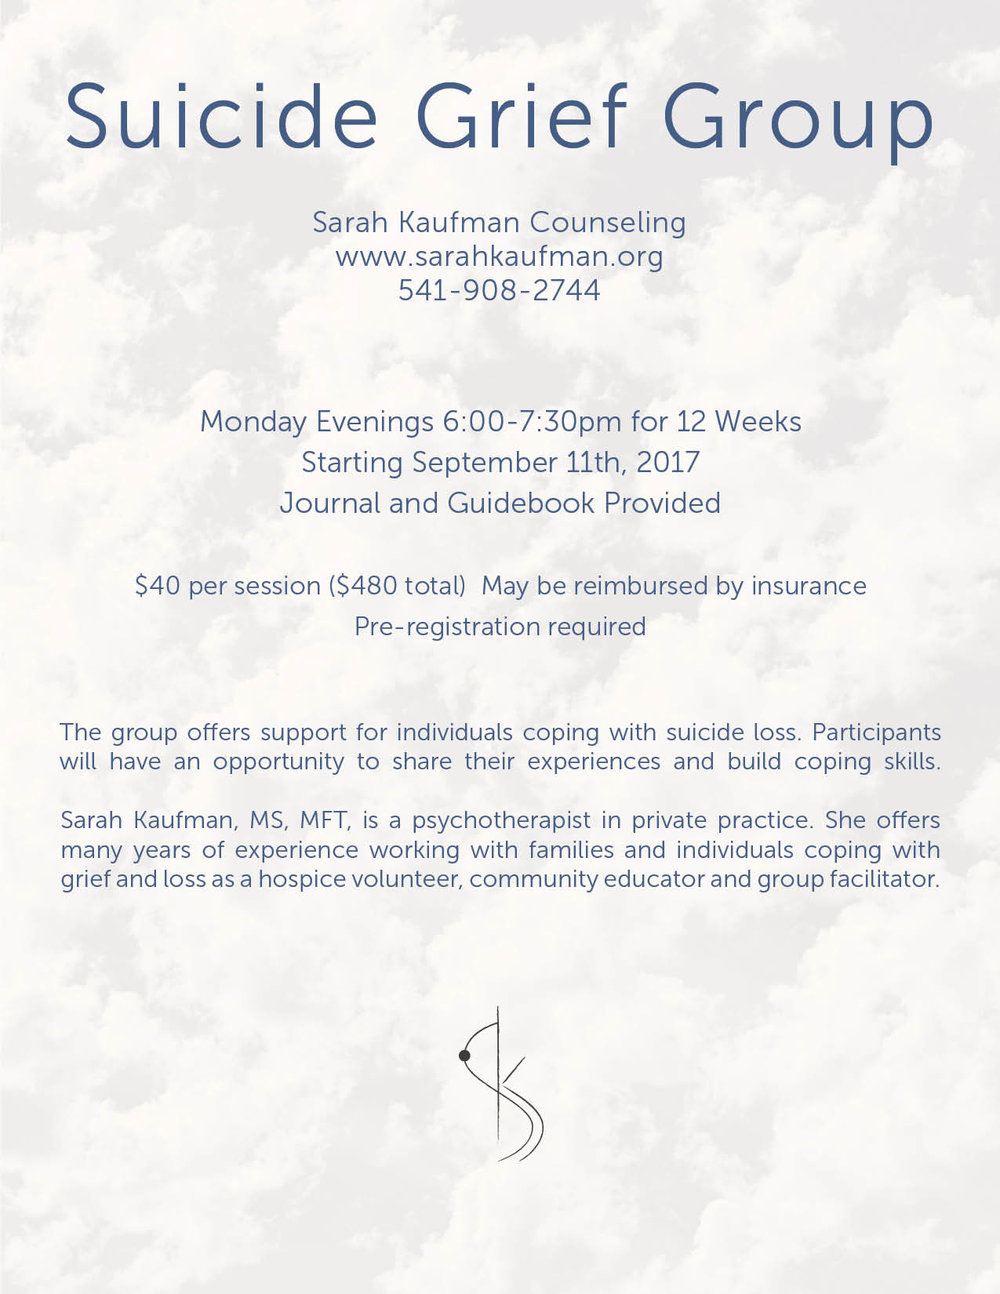 Suicide Grief Group - Sarah Kaufman Counseling - Eugene Oreogn